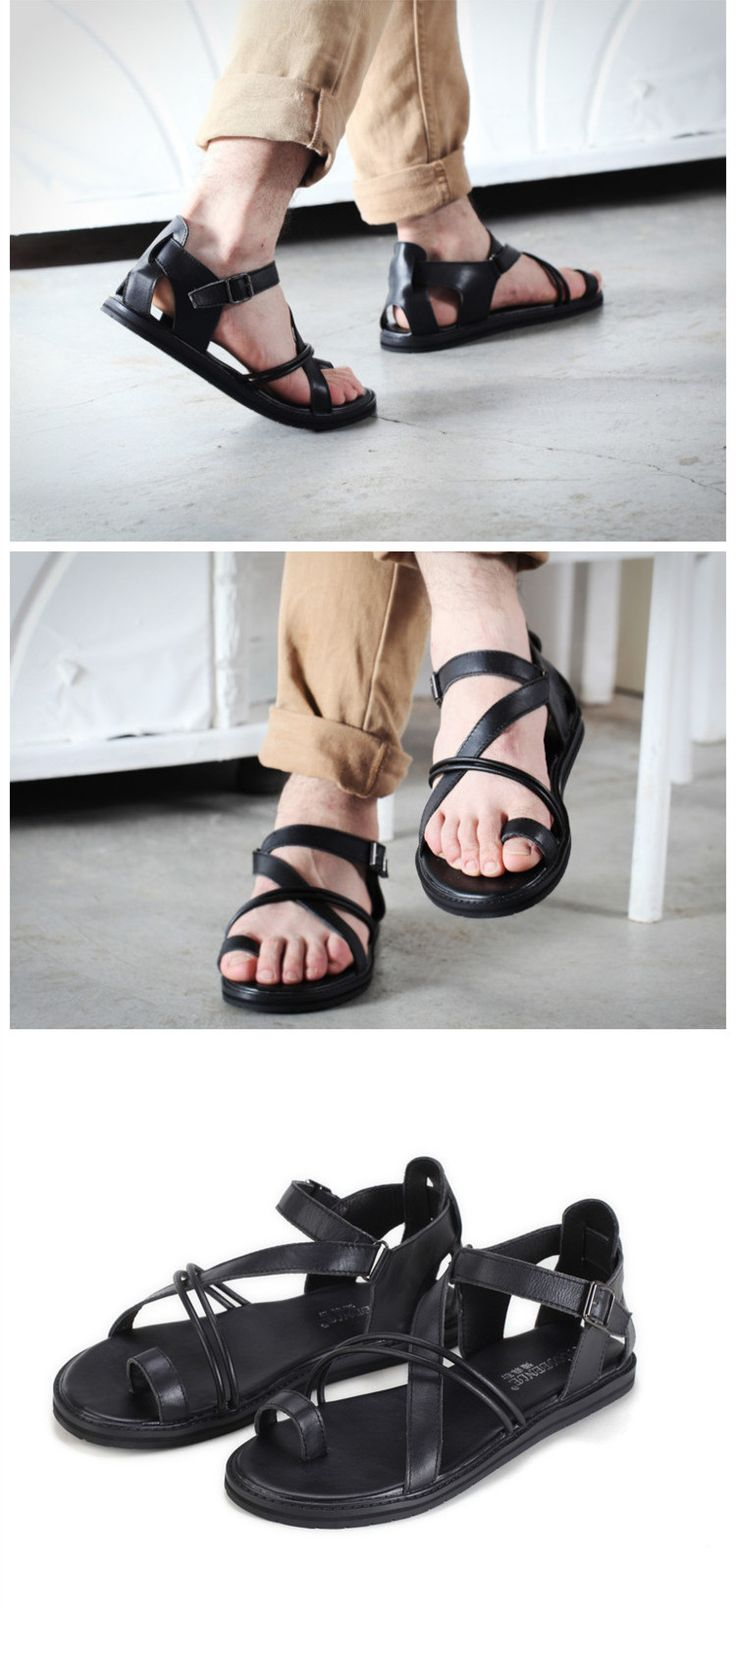 2015 new men's fashion sandals trend genuine leather beach gladiator men shoes sandals-inMen's Sandals from Shoes on Aliexpress.com | Alibaba Group